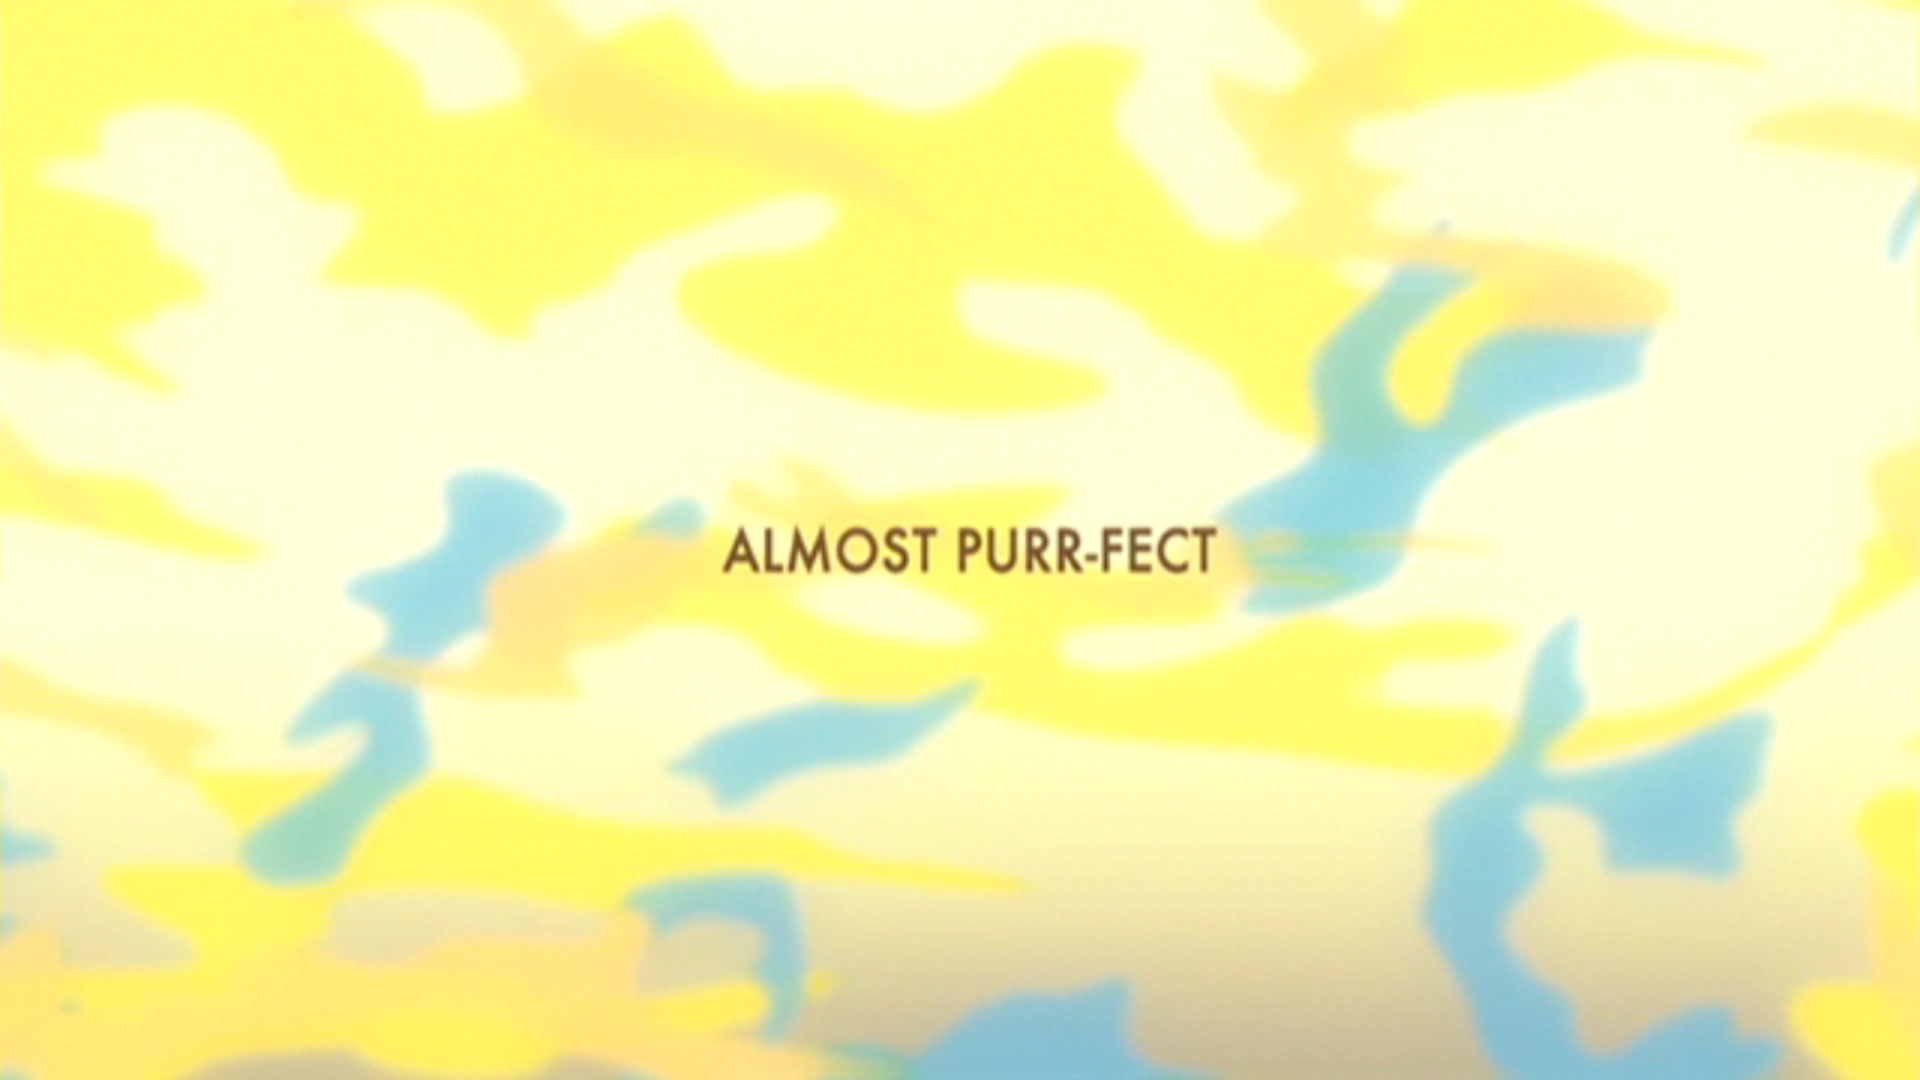 Almost Purr-fect title card